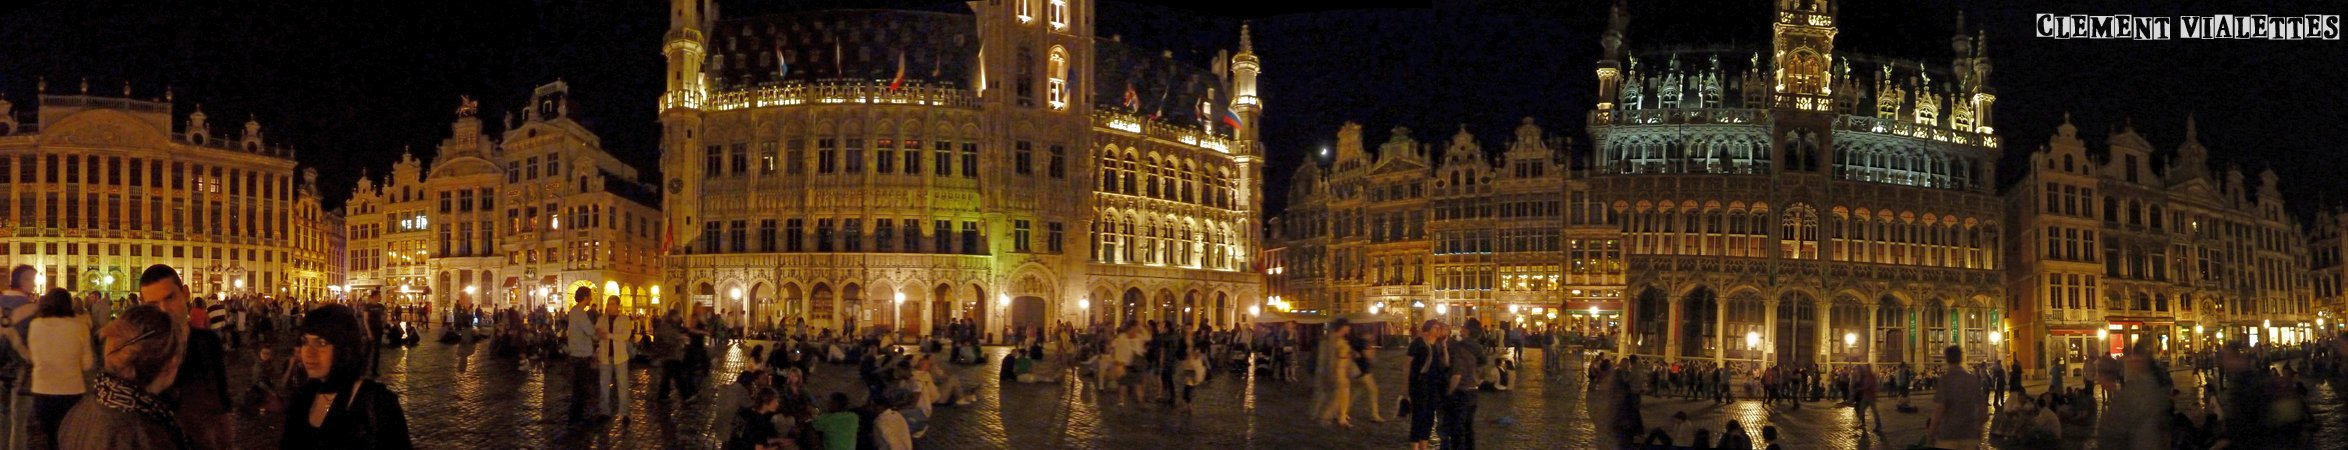 2011-05-bruxelles-grand_place_de_nuit_panoramique_02.jpg